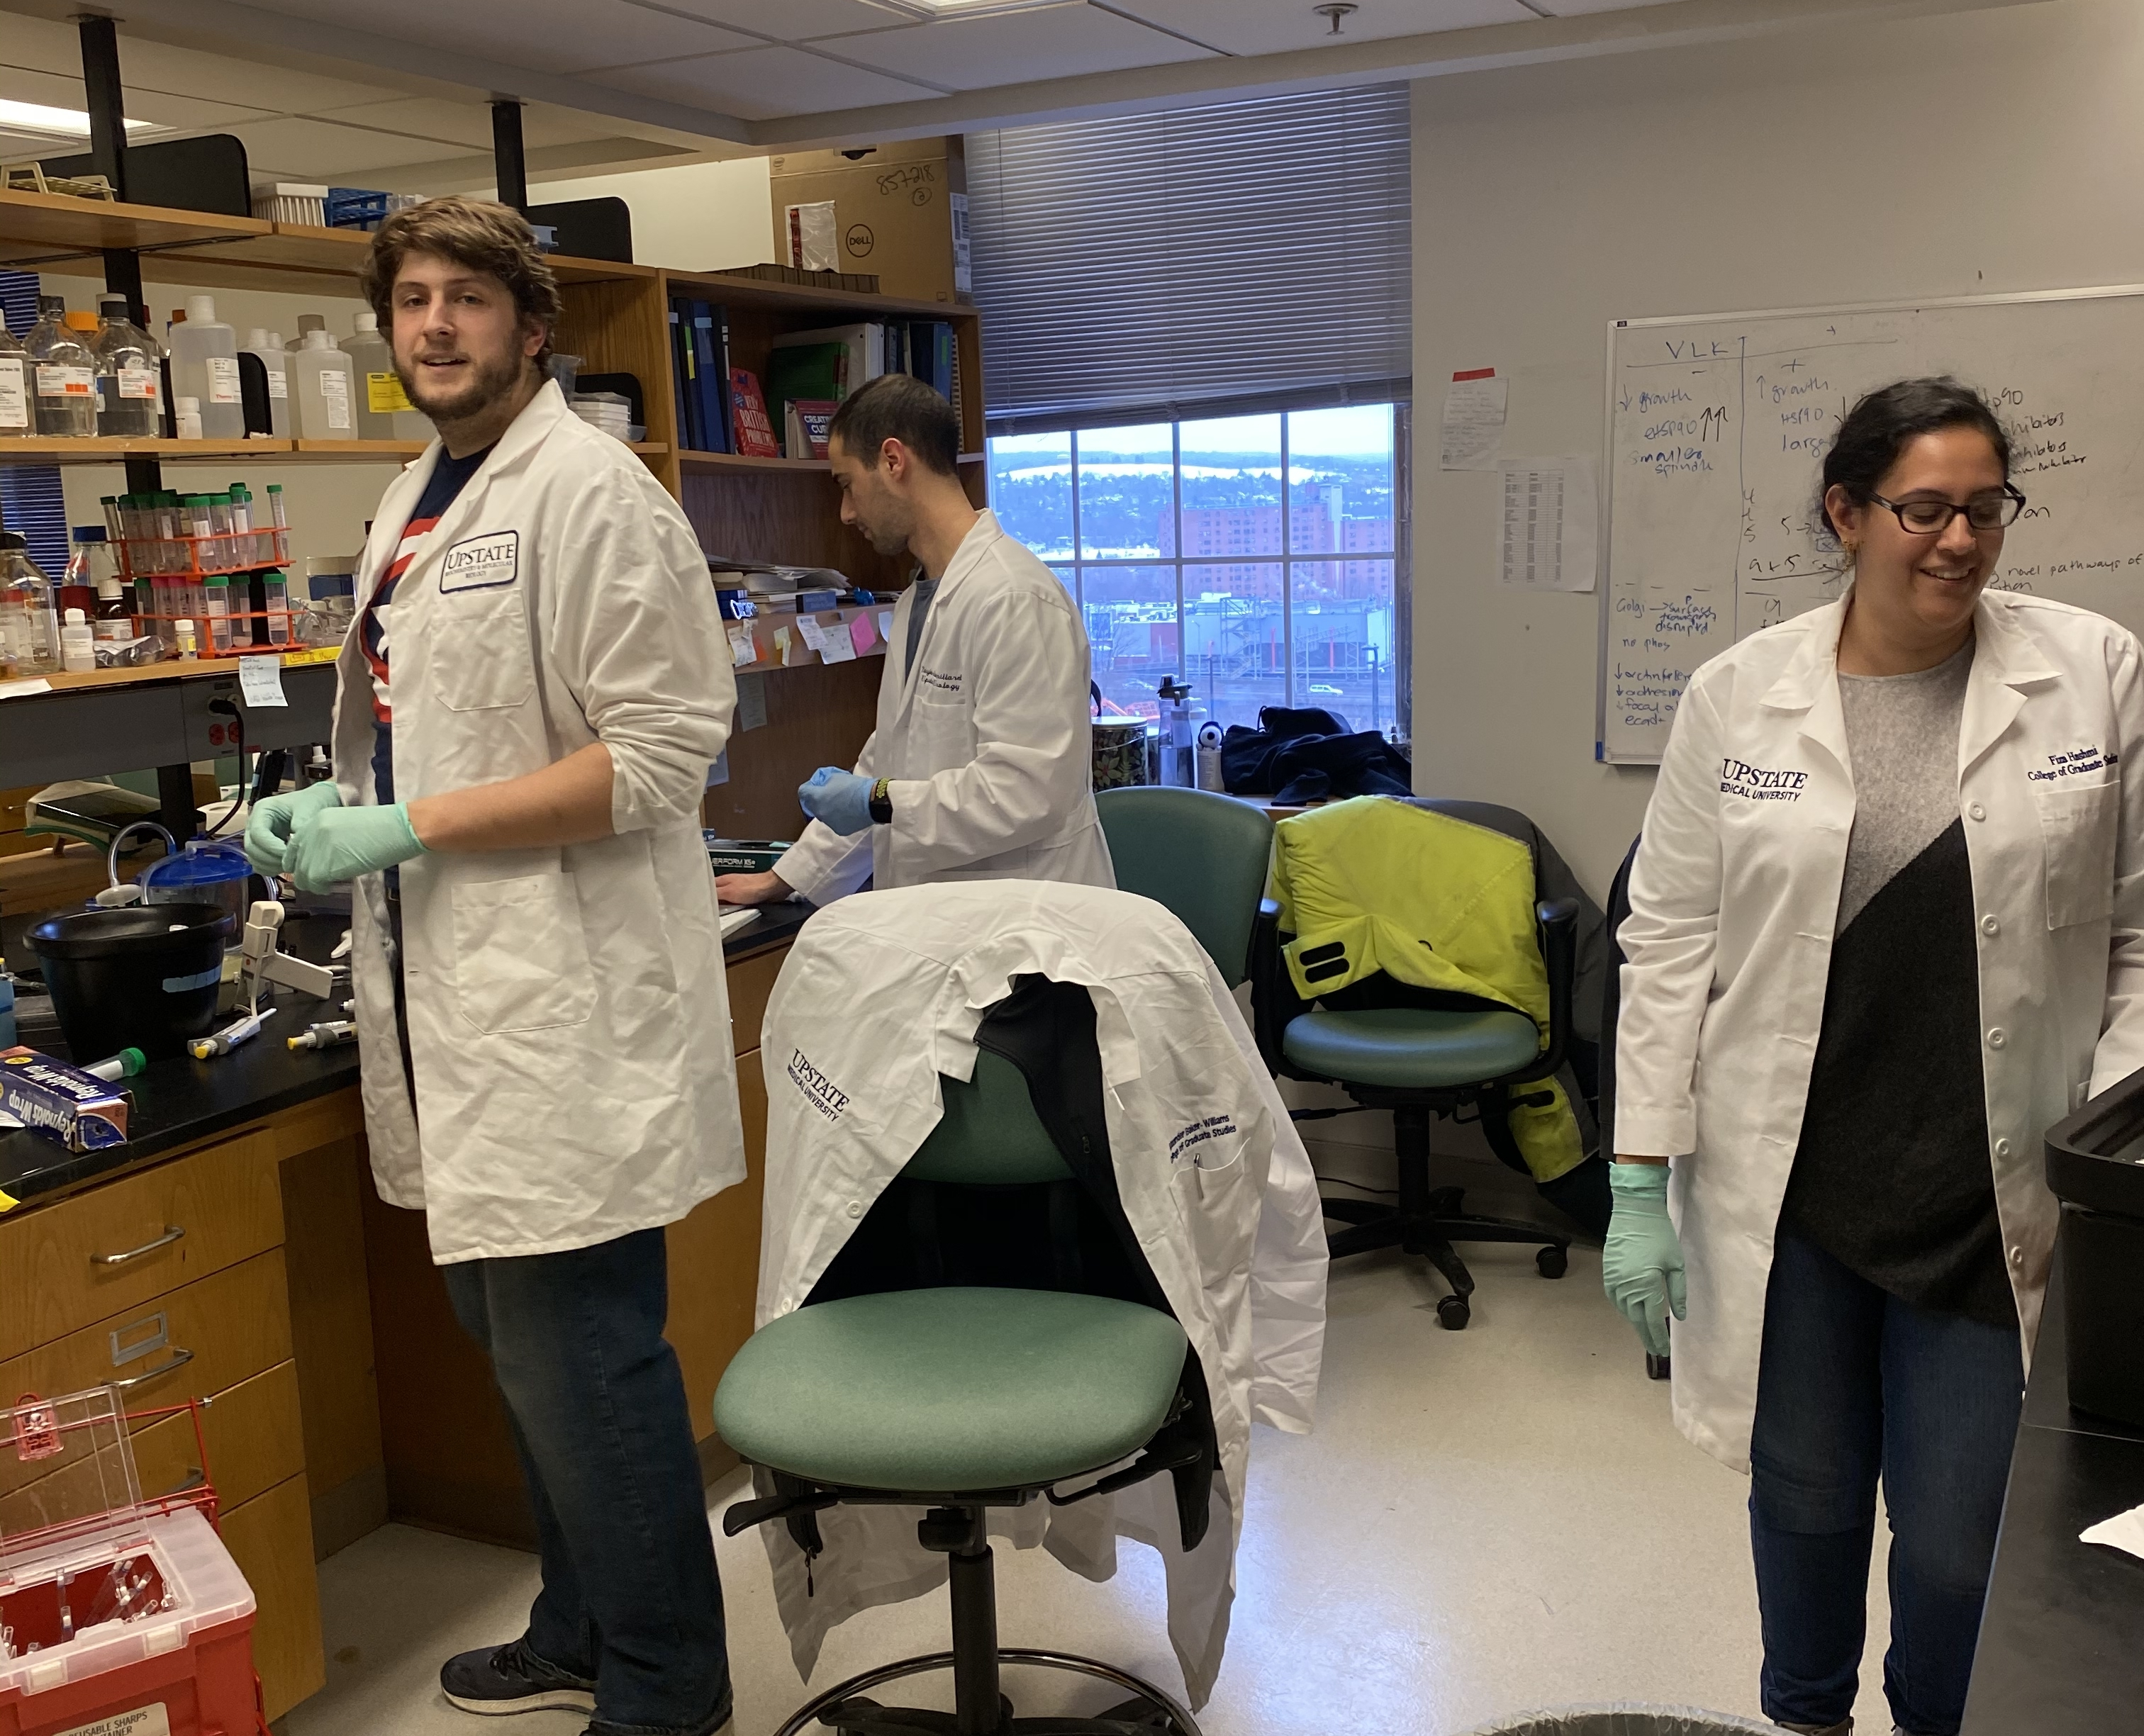 Dr. Dimitra Bourboulia's research team at SUNY Upstate Medical University